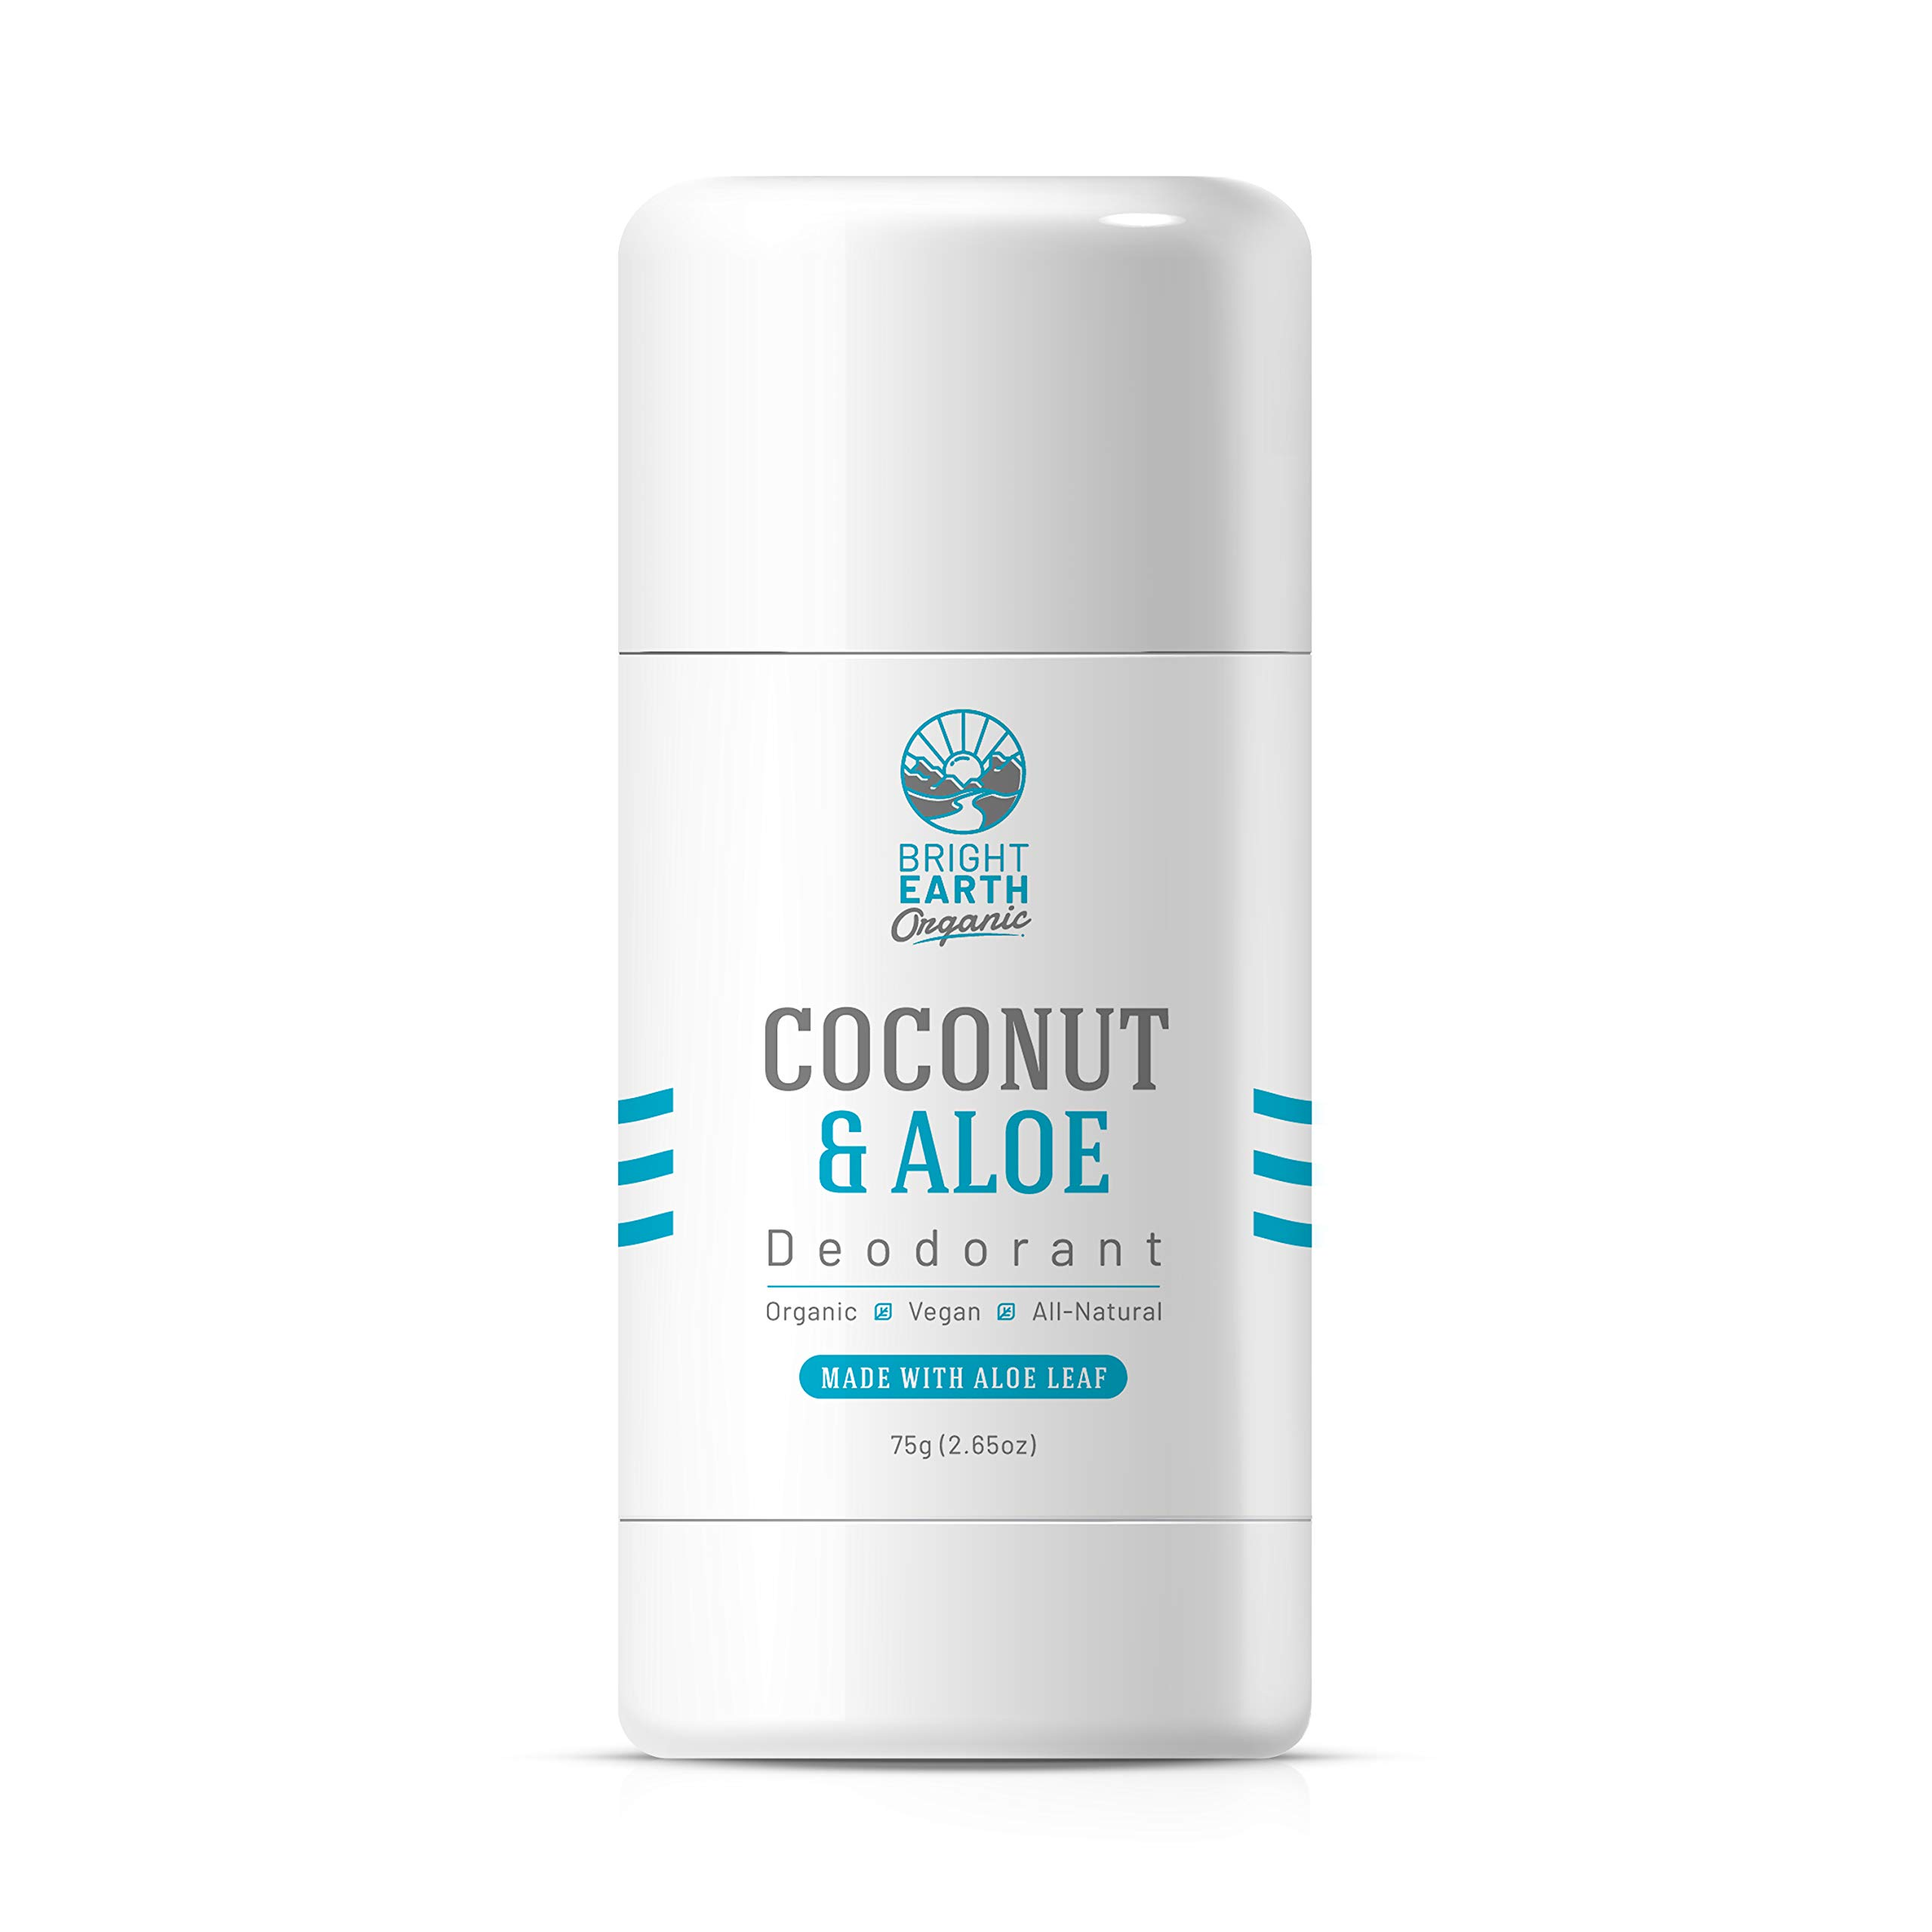 Bright Earth Organic All Natural Coconut and Aloe Unscented Magnesium Deodorant - Free of Aluminum, Baking Soda, Parabens, Sulfates, Gluten, Cruelty – for Men and Women (2.65 oz)